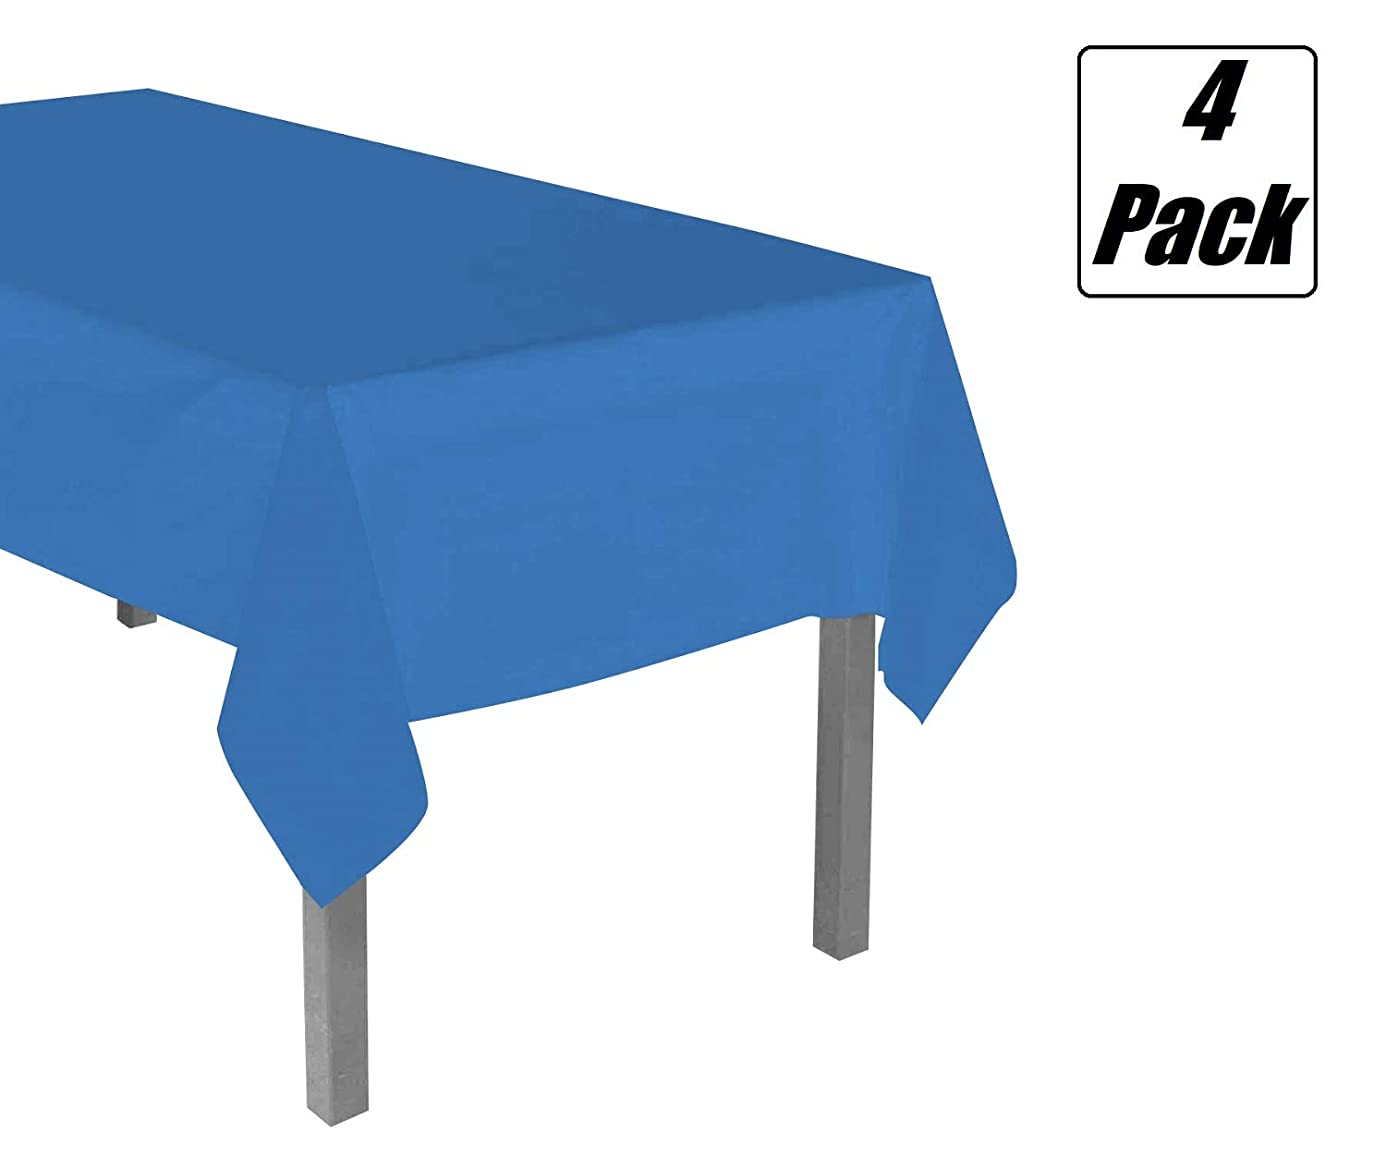 Disposable Plastic Table Covers (4 Pack, 54